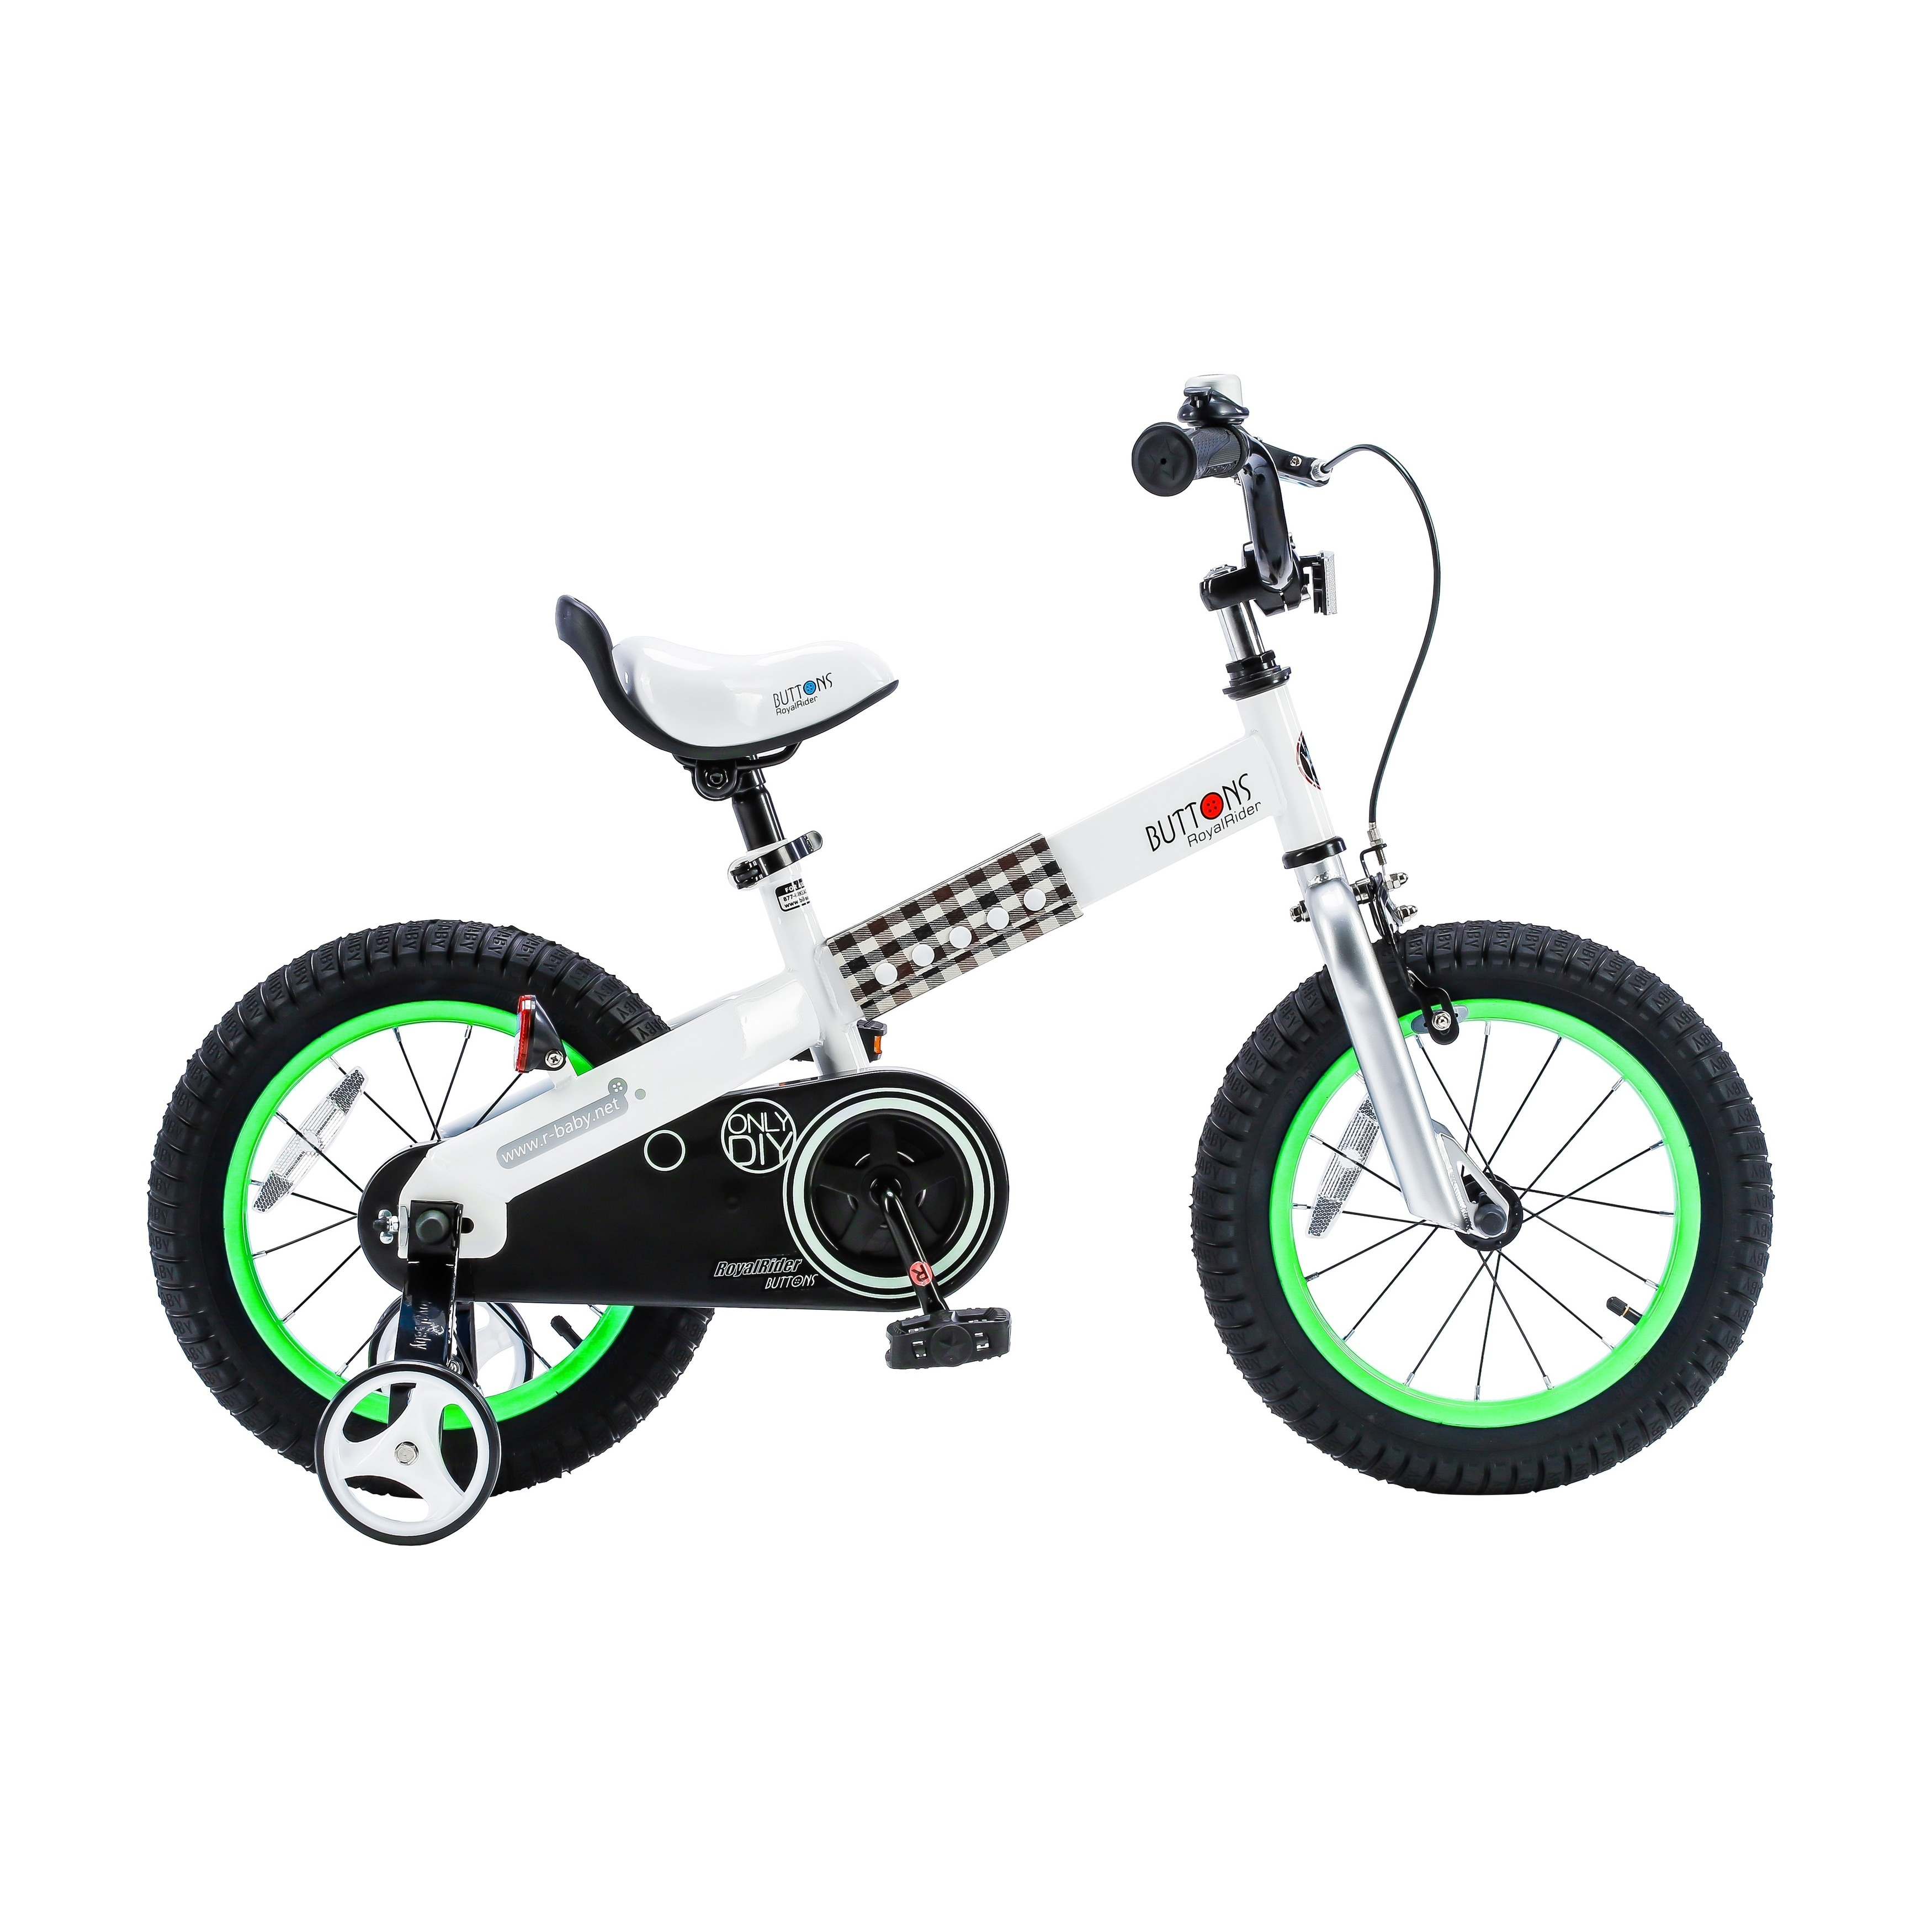 b5a84c44556e Shop Royalbaby Buttons 14-inch Kids' Bike with Training Wheels - 14 ...